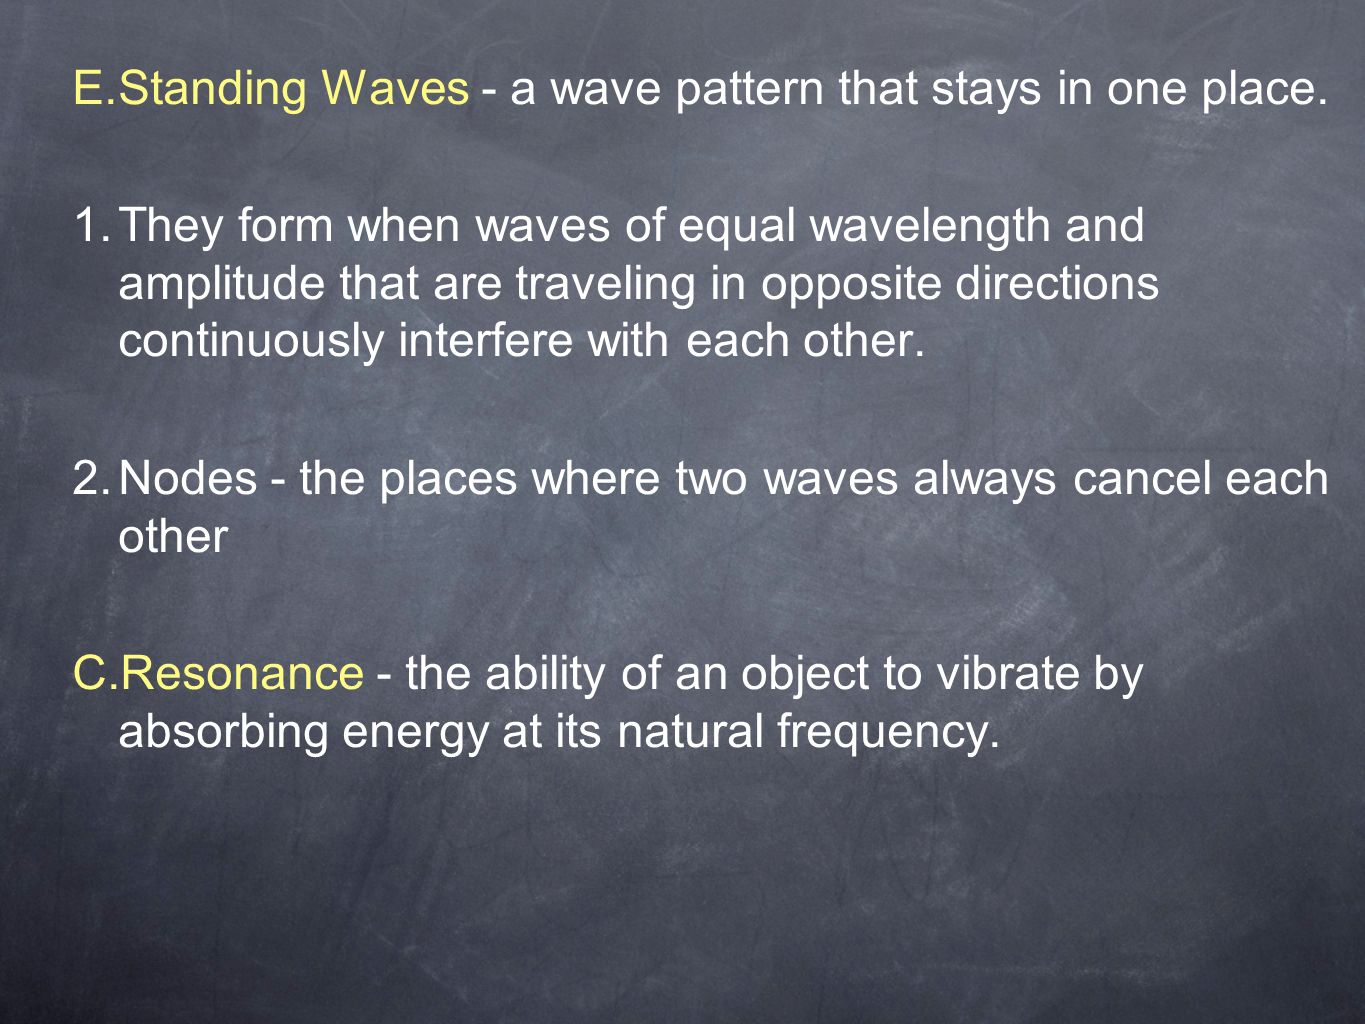 E. Standing Waves - a wave pattern that stays in one place.